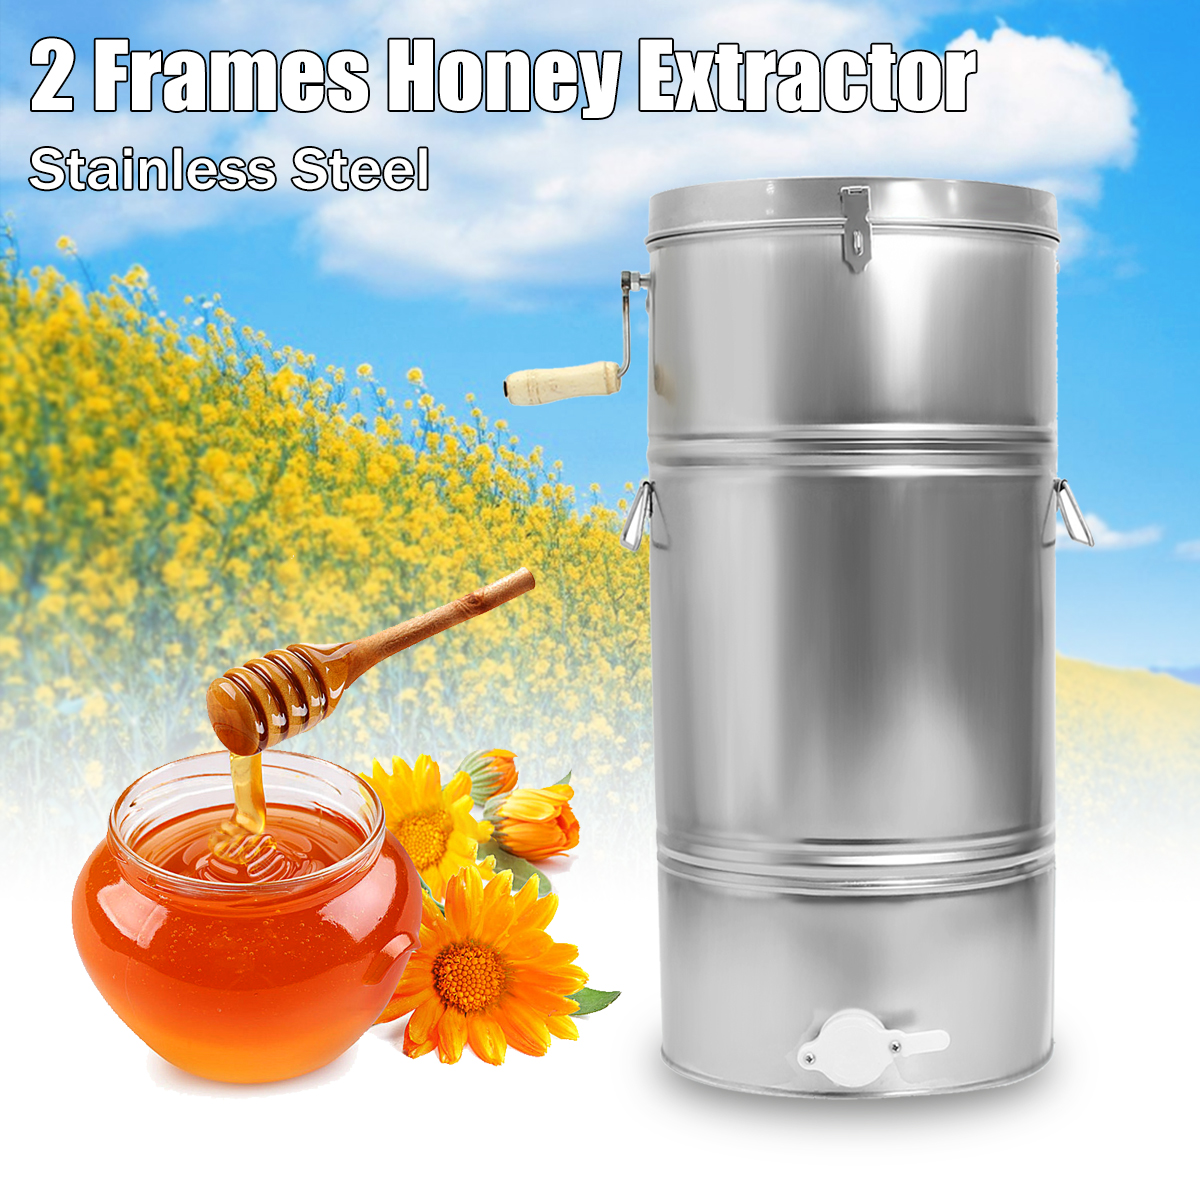 2 Frame Stainless Steel Bee Honey Extractor High Sensitivity Bee Honey Extractor Two SS Honeycomb Drum Beekeeping